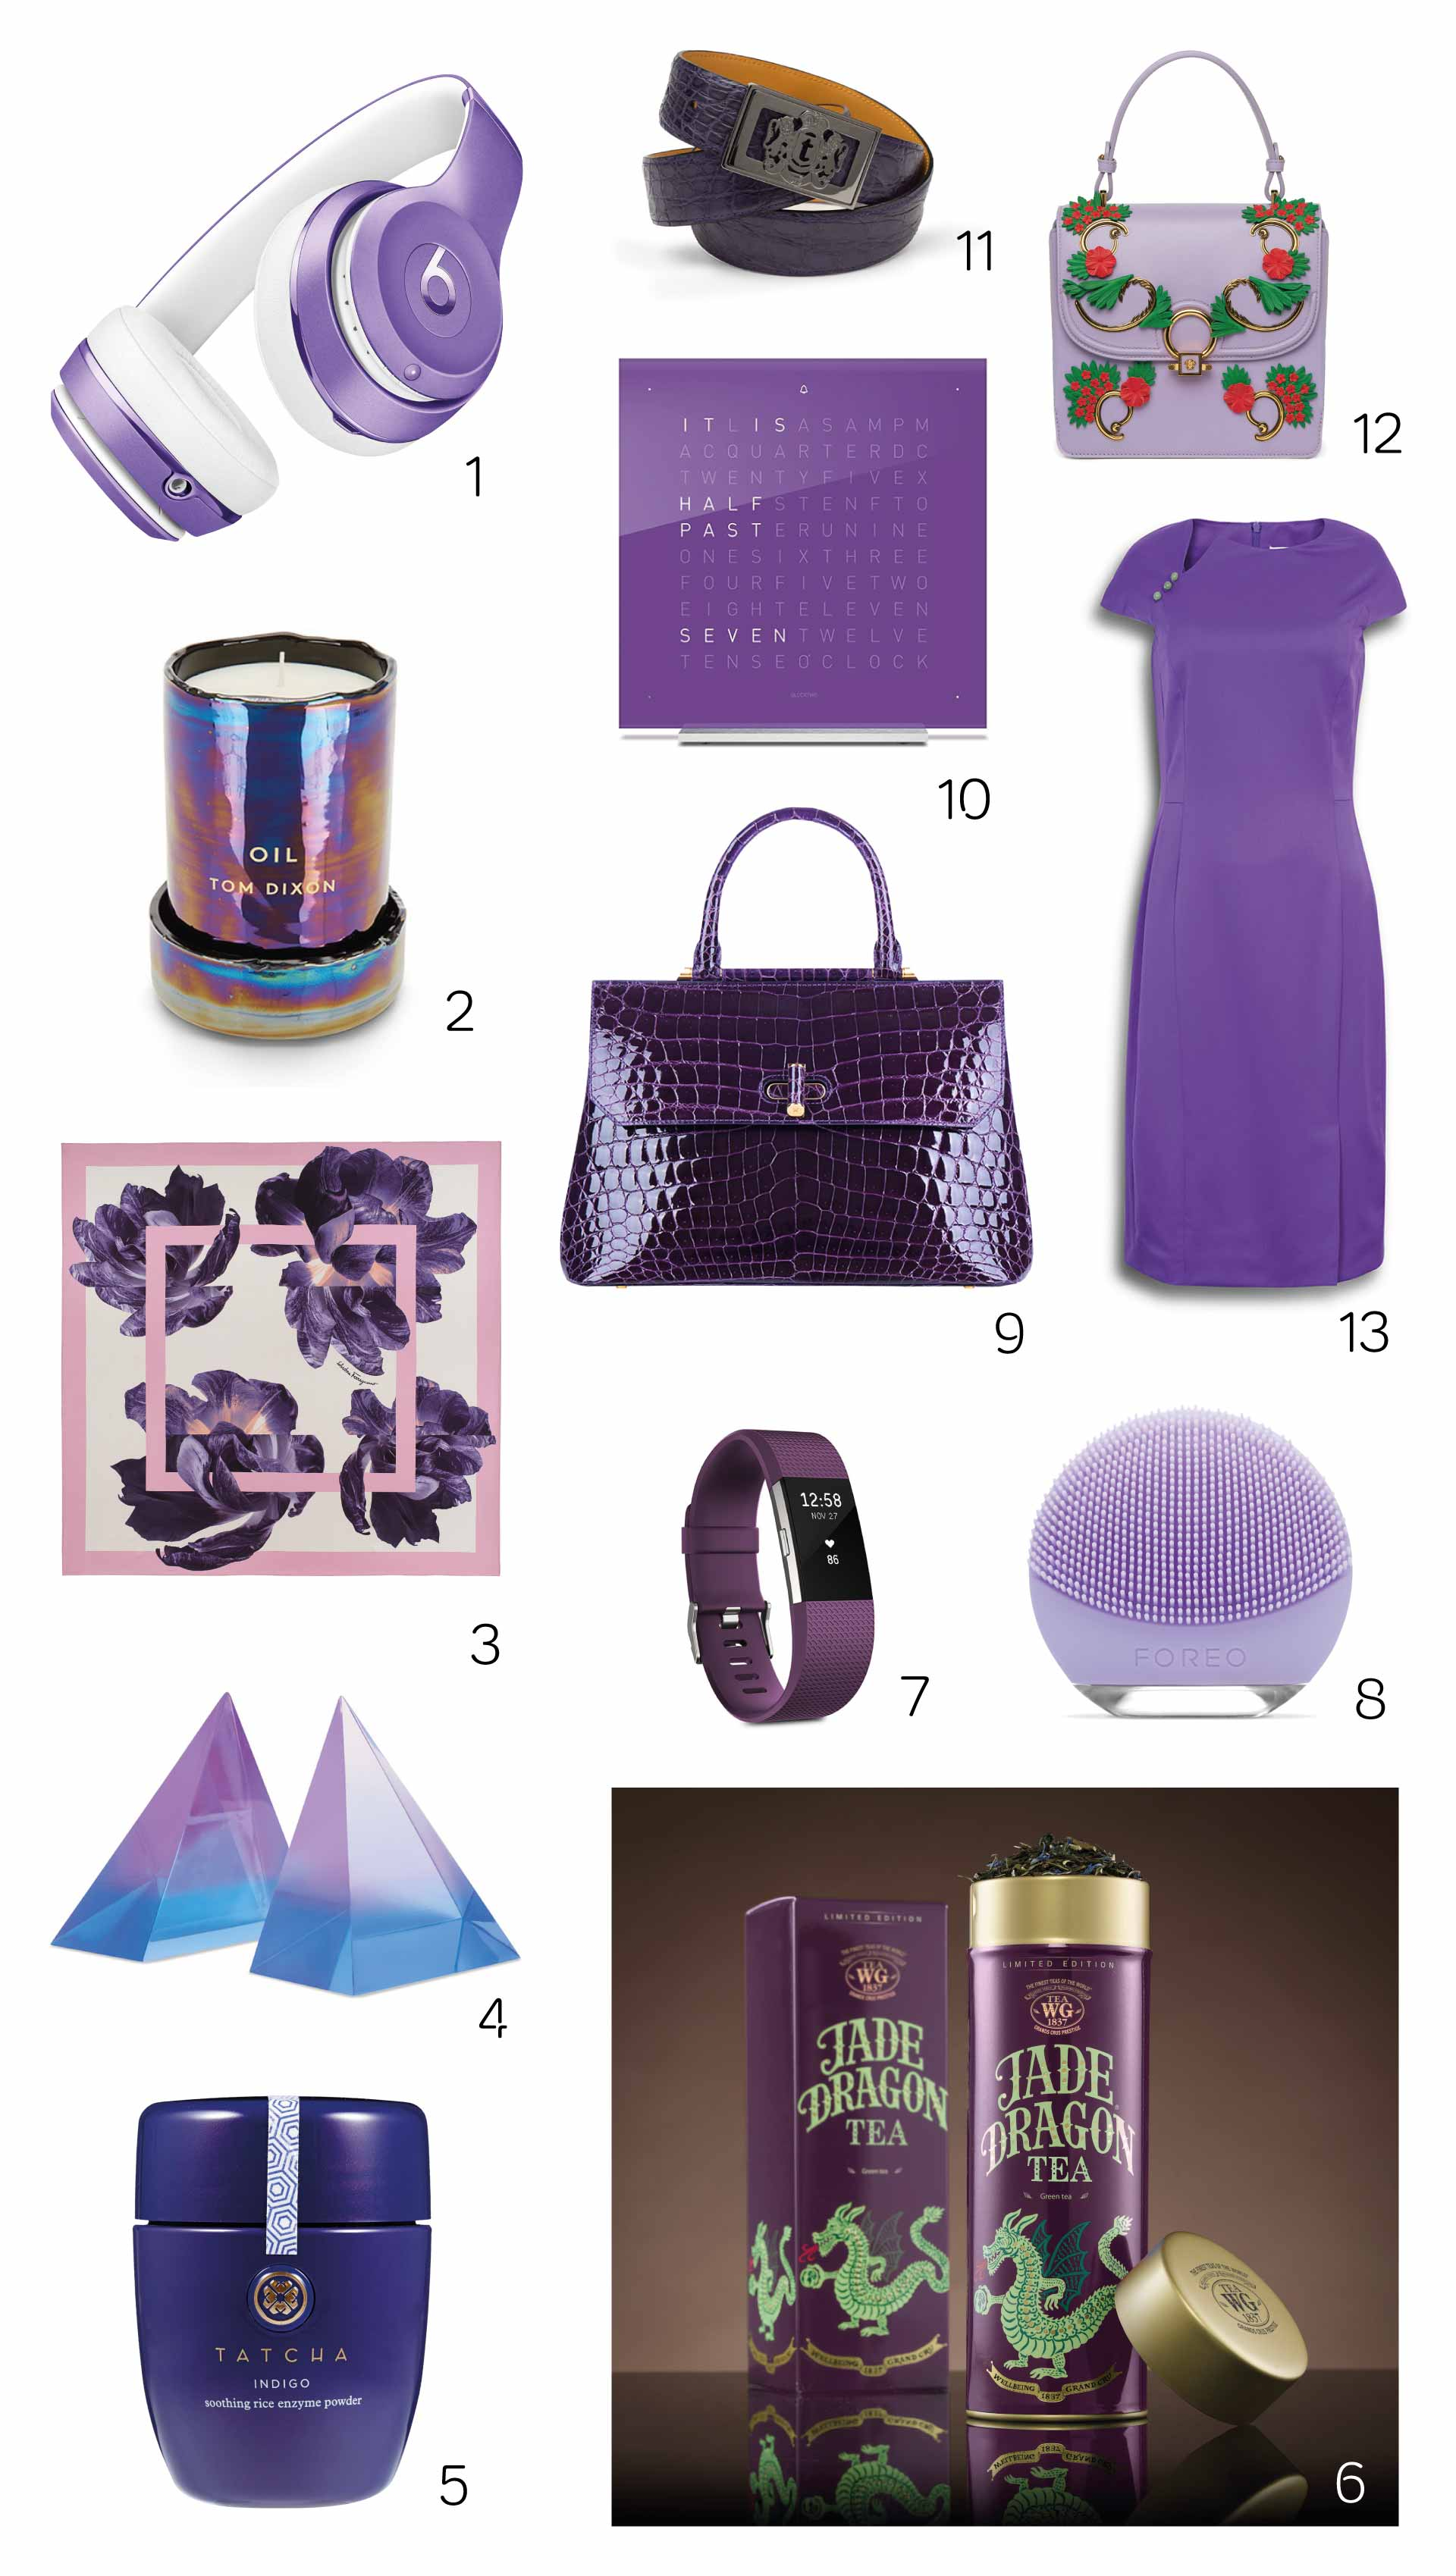 Our selection of Ultra Violet products